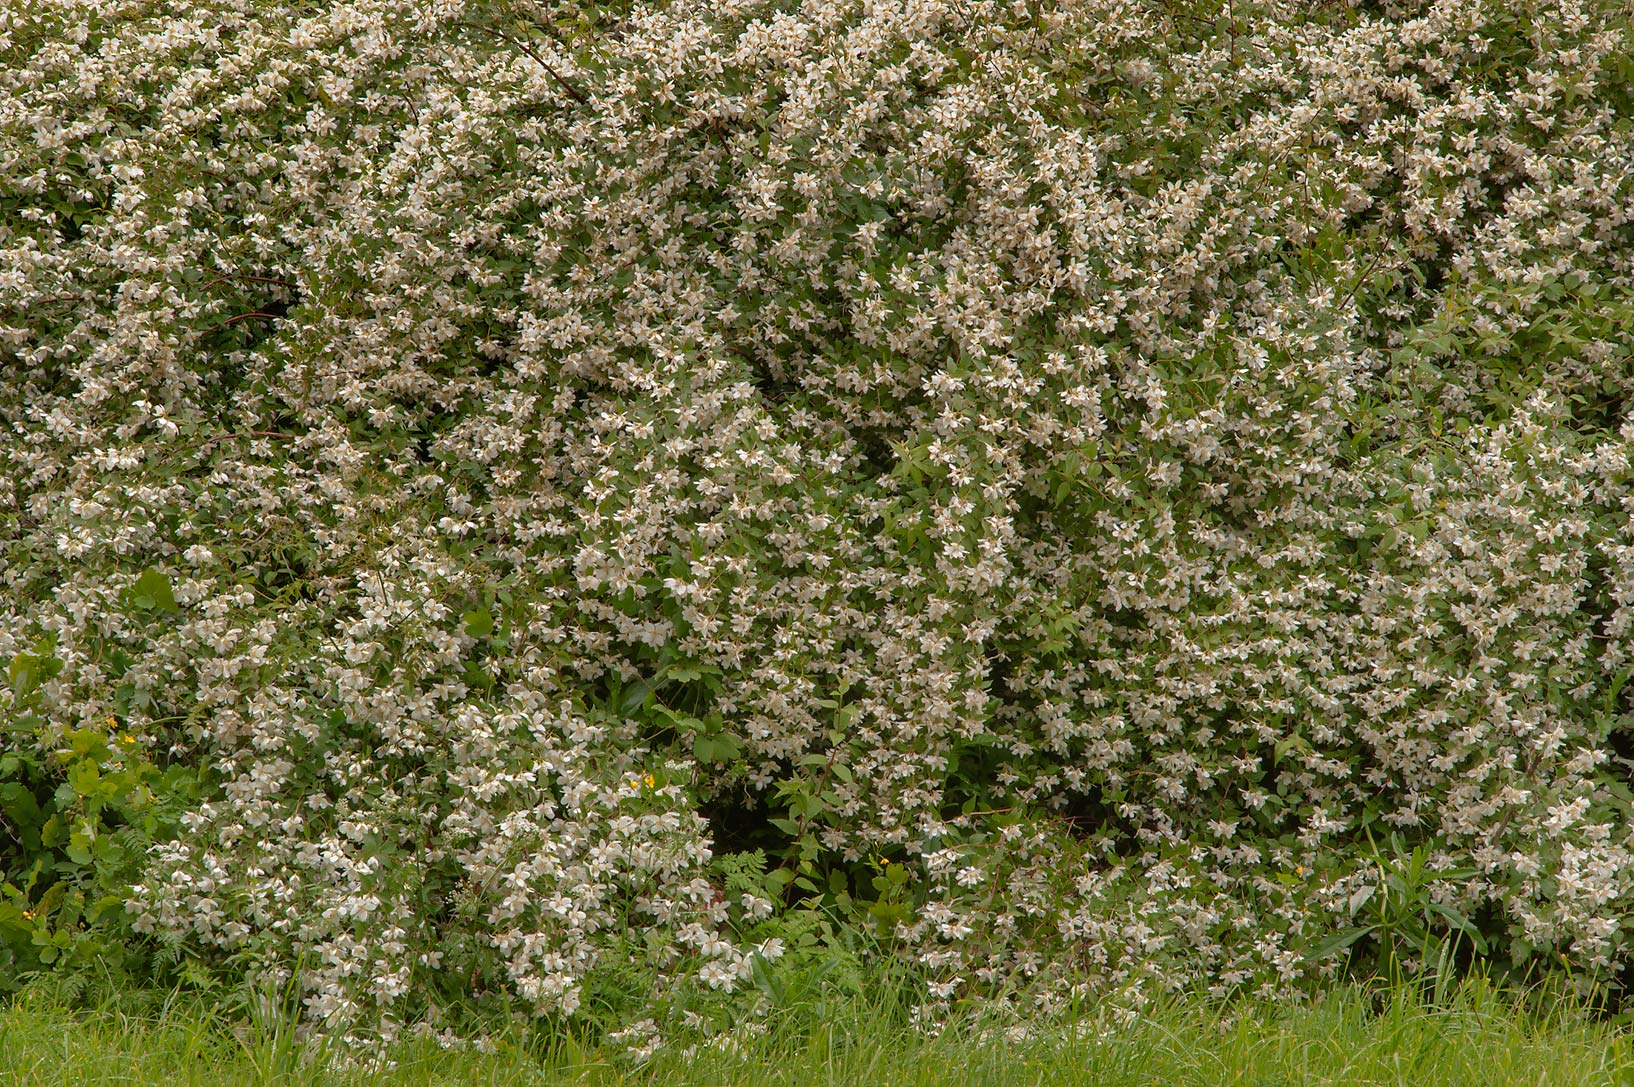 Photo 1440 29 White Flowers On A Bush Of Bridalwreath Spiraea